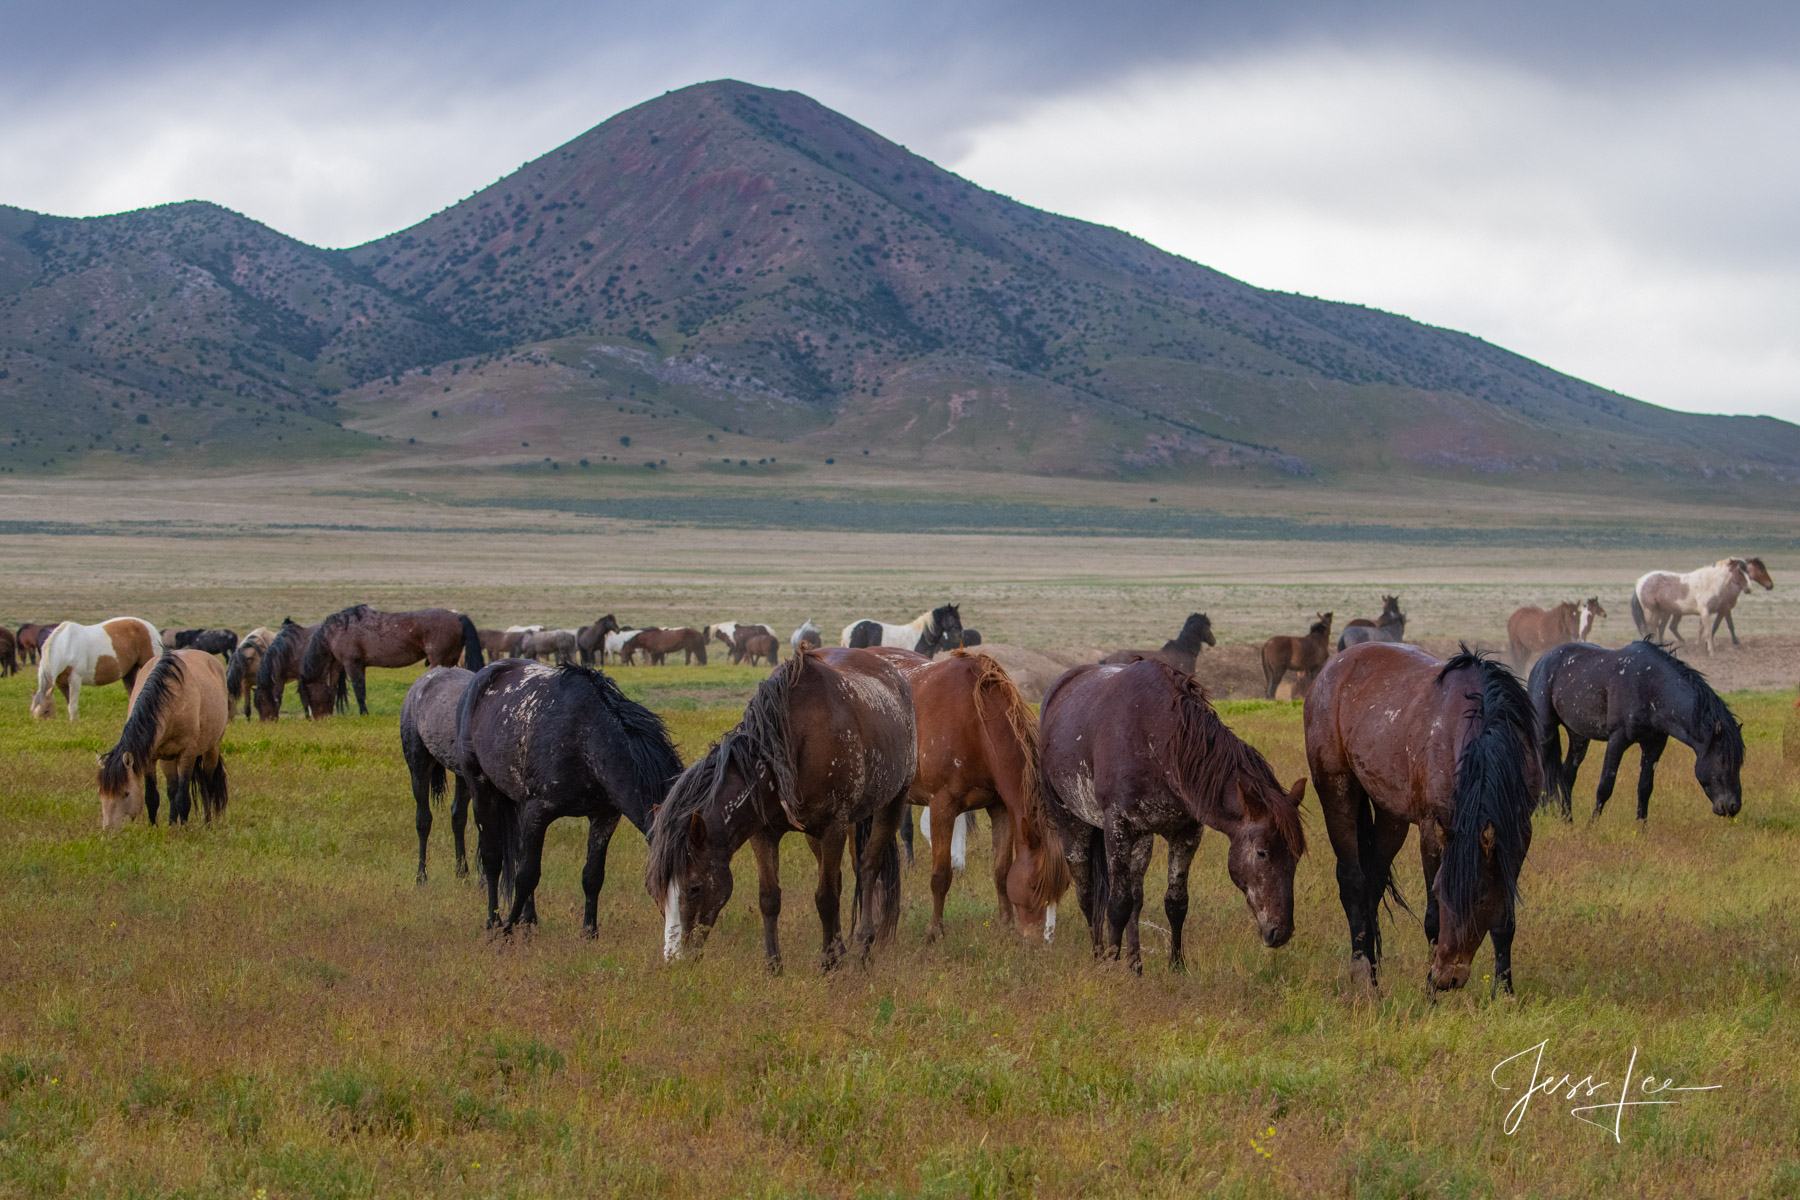 landscape photography, Large format, quality, museum, fine art, print, jess lee, artist, western, cowboy, photographer, limited edition, high quality, high resolution, beautiful, artist, wildlife, , B, photo